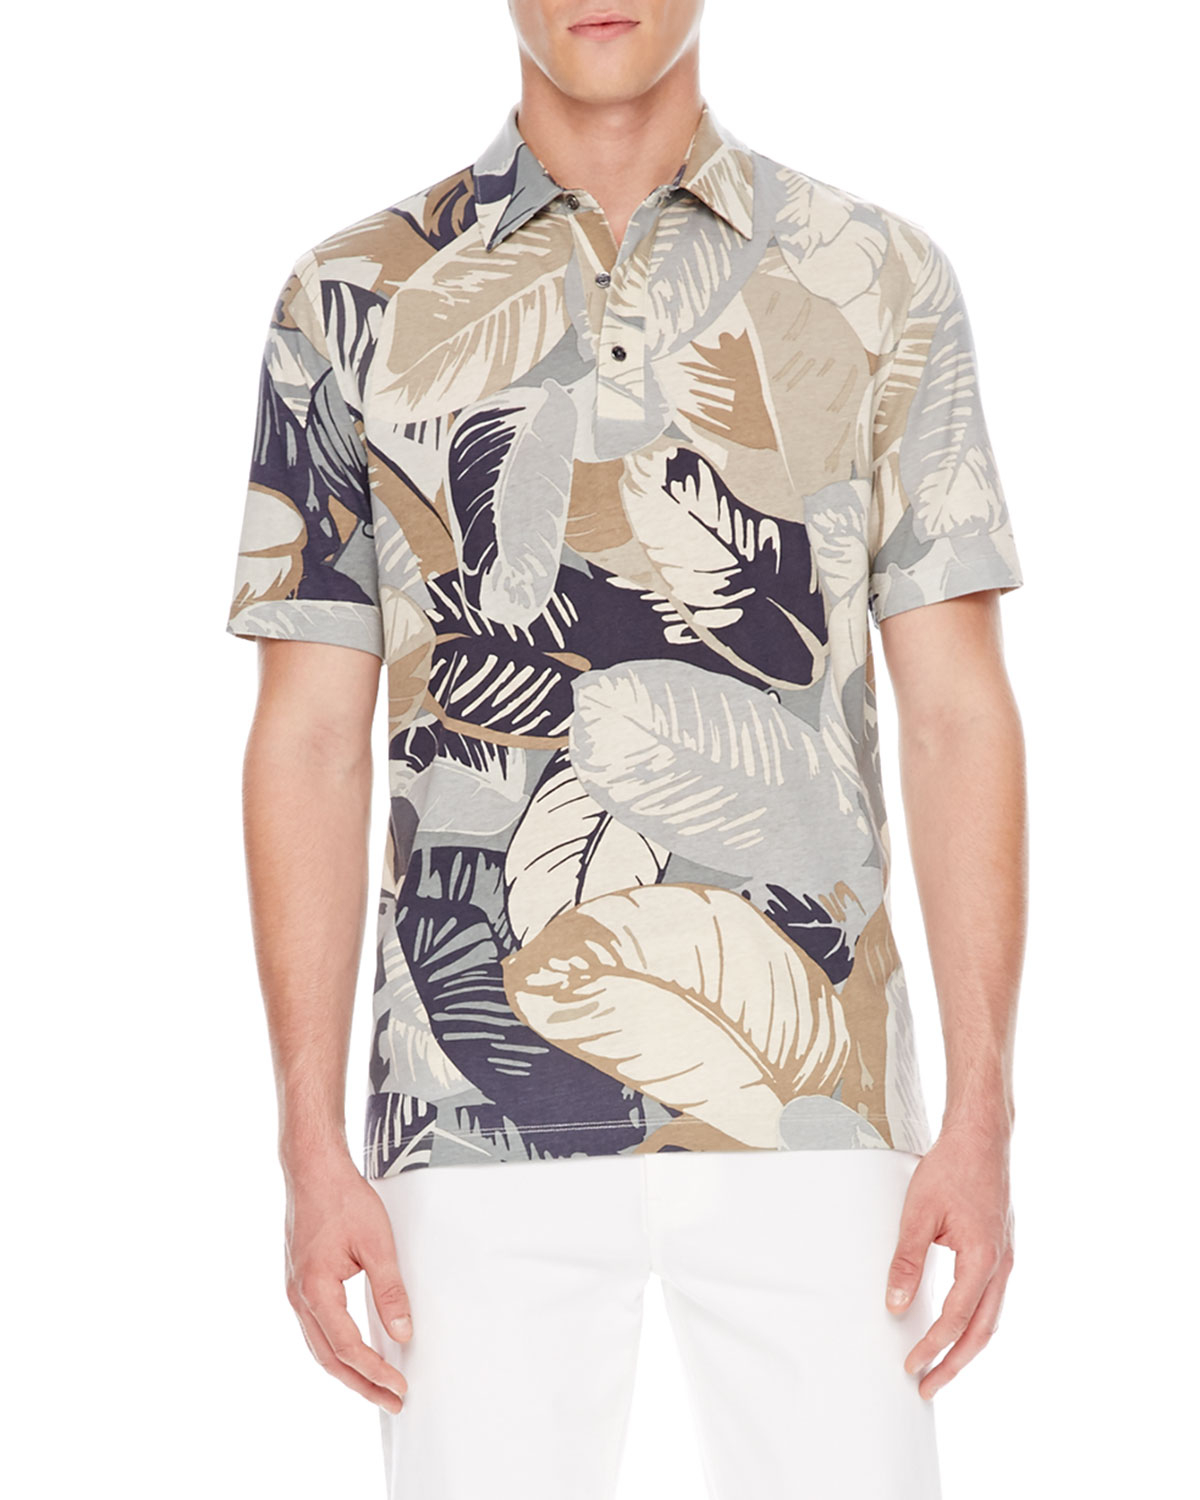 Michael Kors Palm Print Polo Shirt In Multicolor For Men